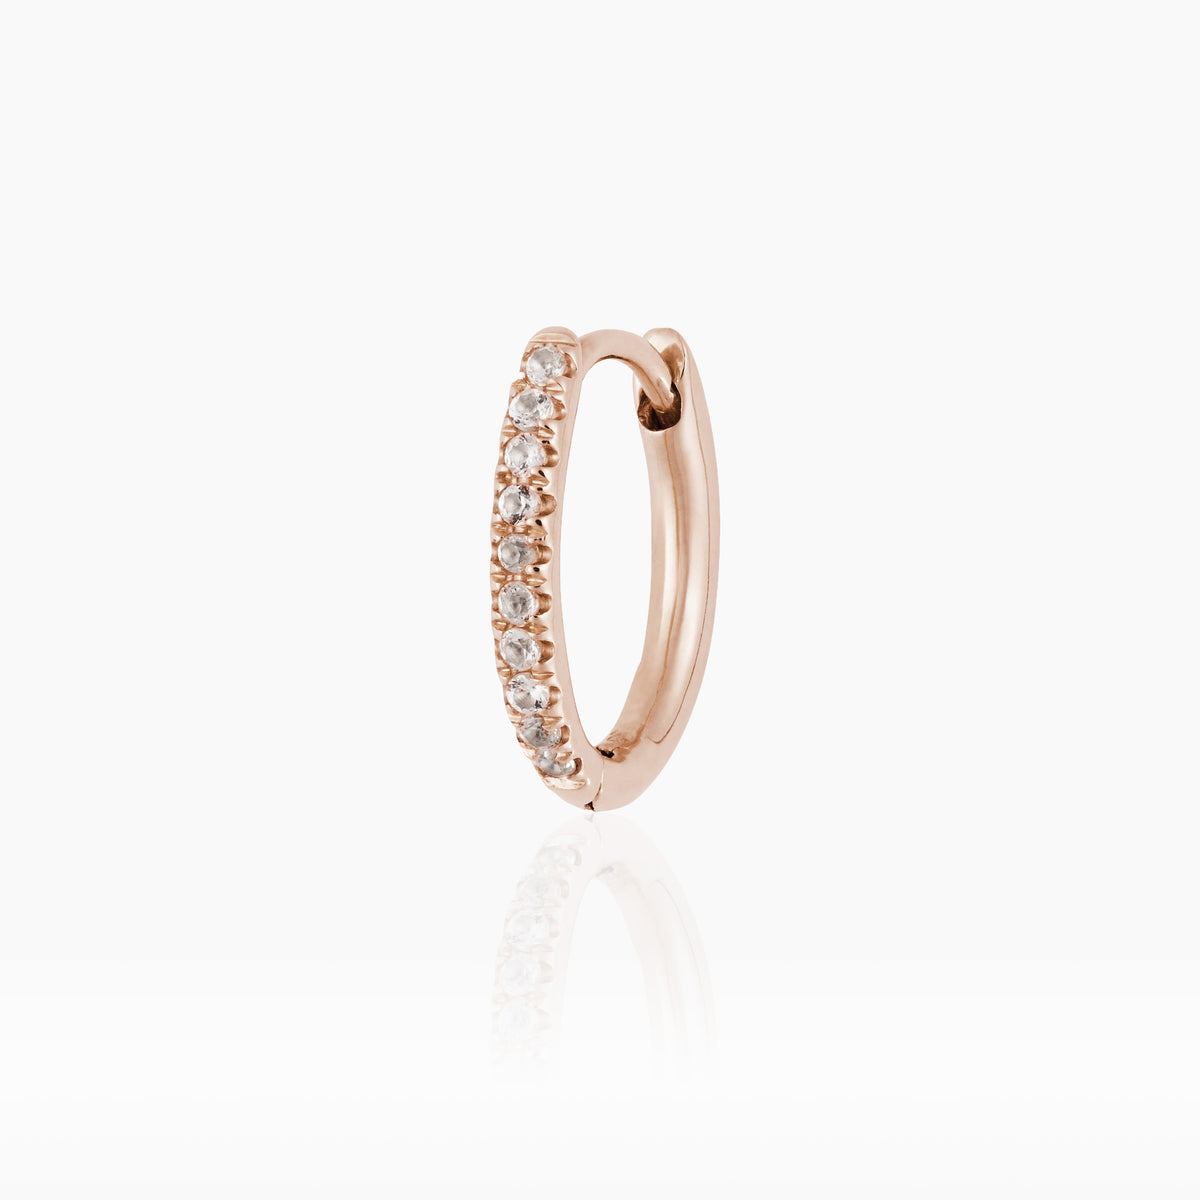 Mini Rose Gold Oval Hoop with White Topaz